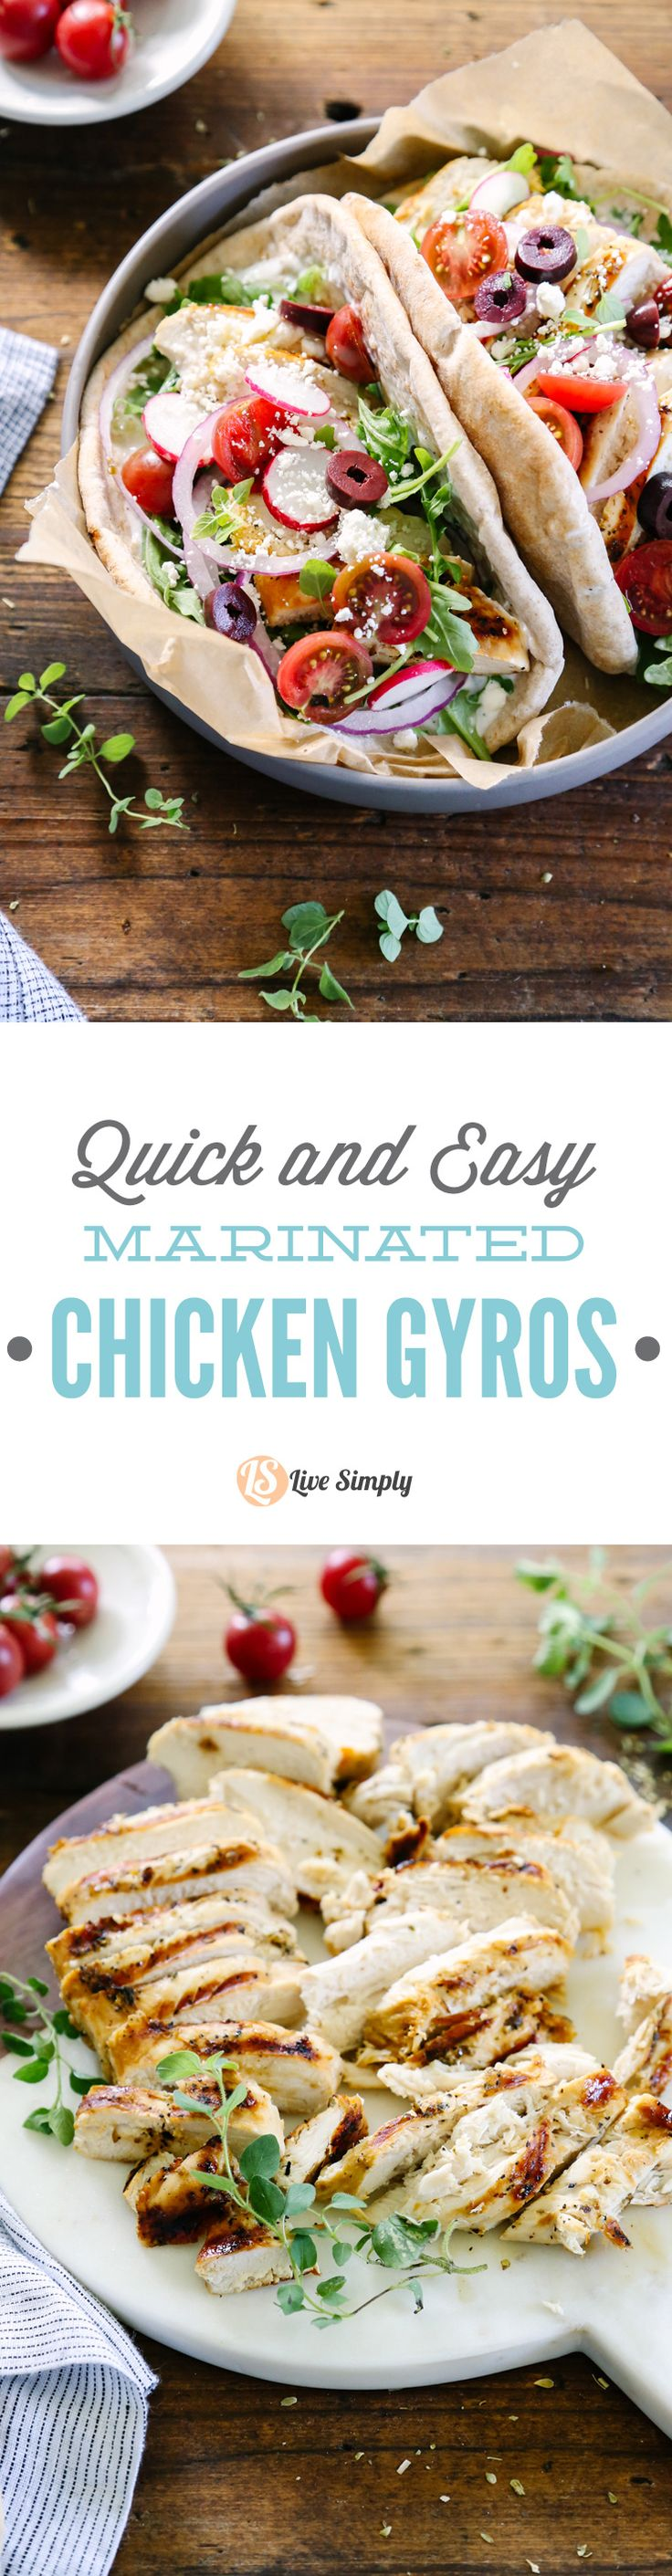 Love this quick and easy weeknight meal: healthy chicken gryos.